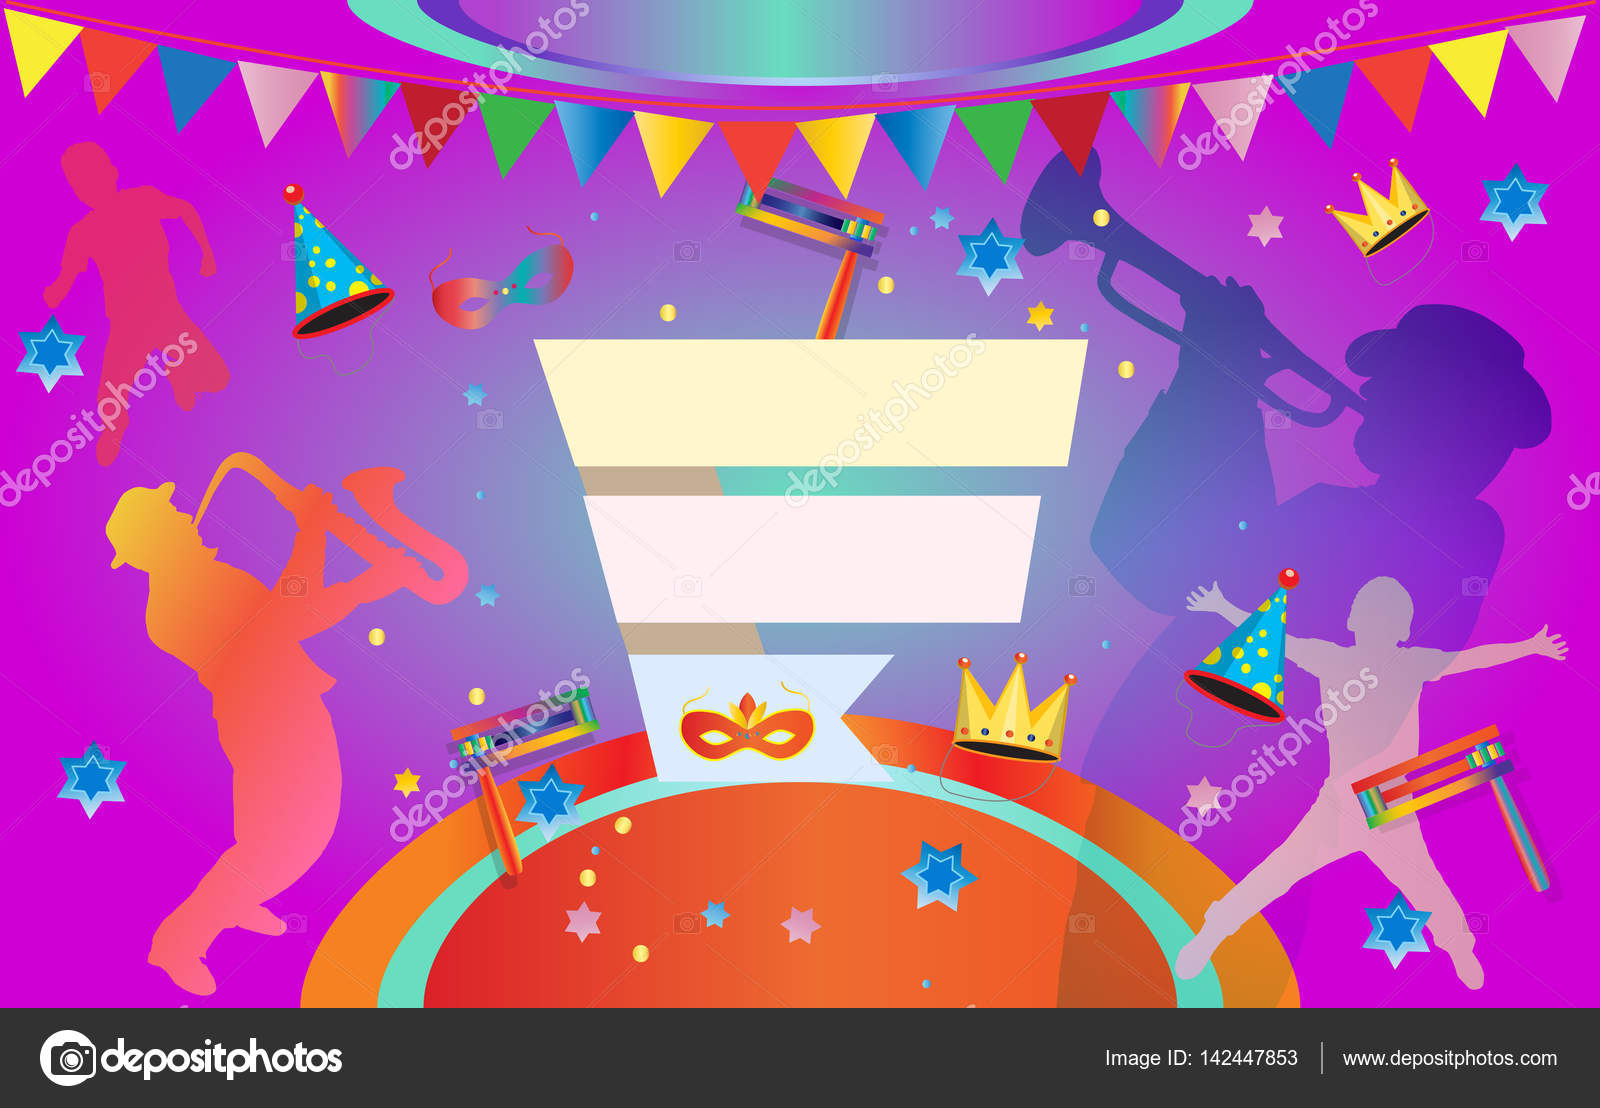 happy purim carnival festival masquerade music poster happy purim carnival festival masquerade music poster invitation holiday kids party poster design vector jewish holiday children event funny flyer